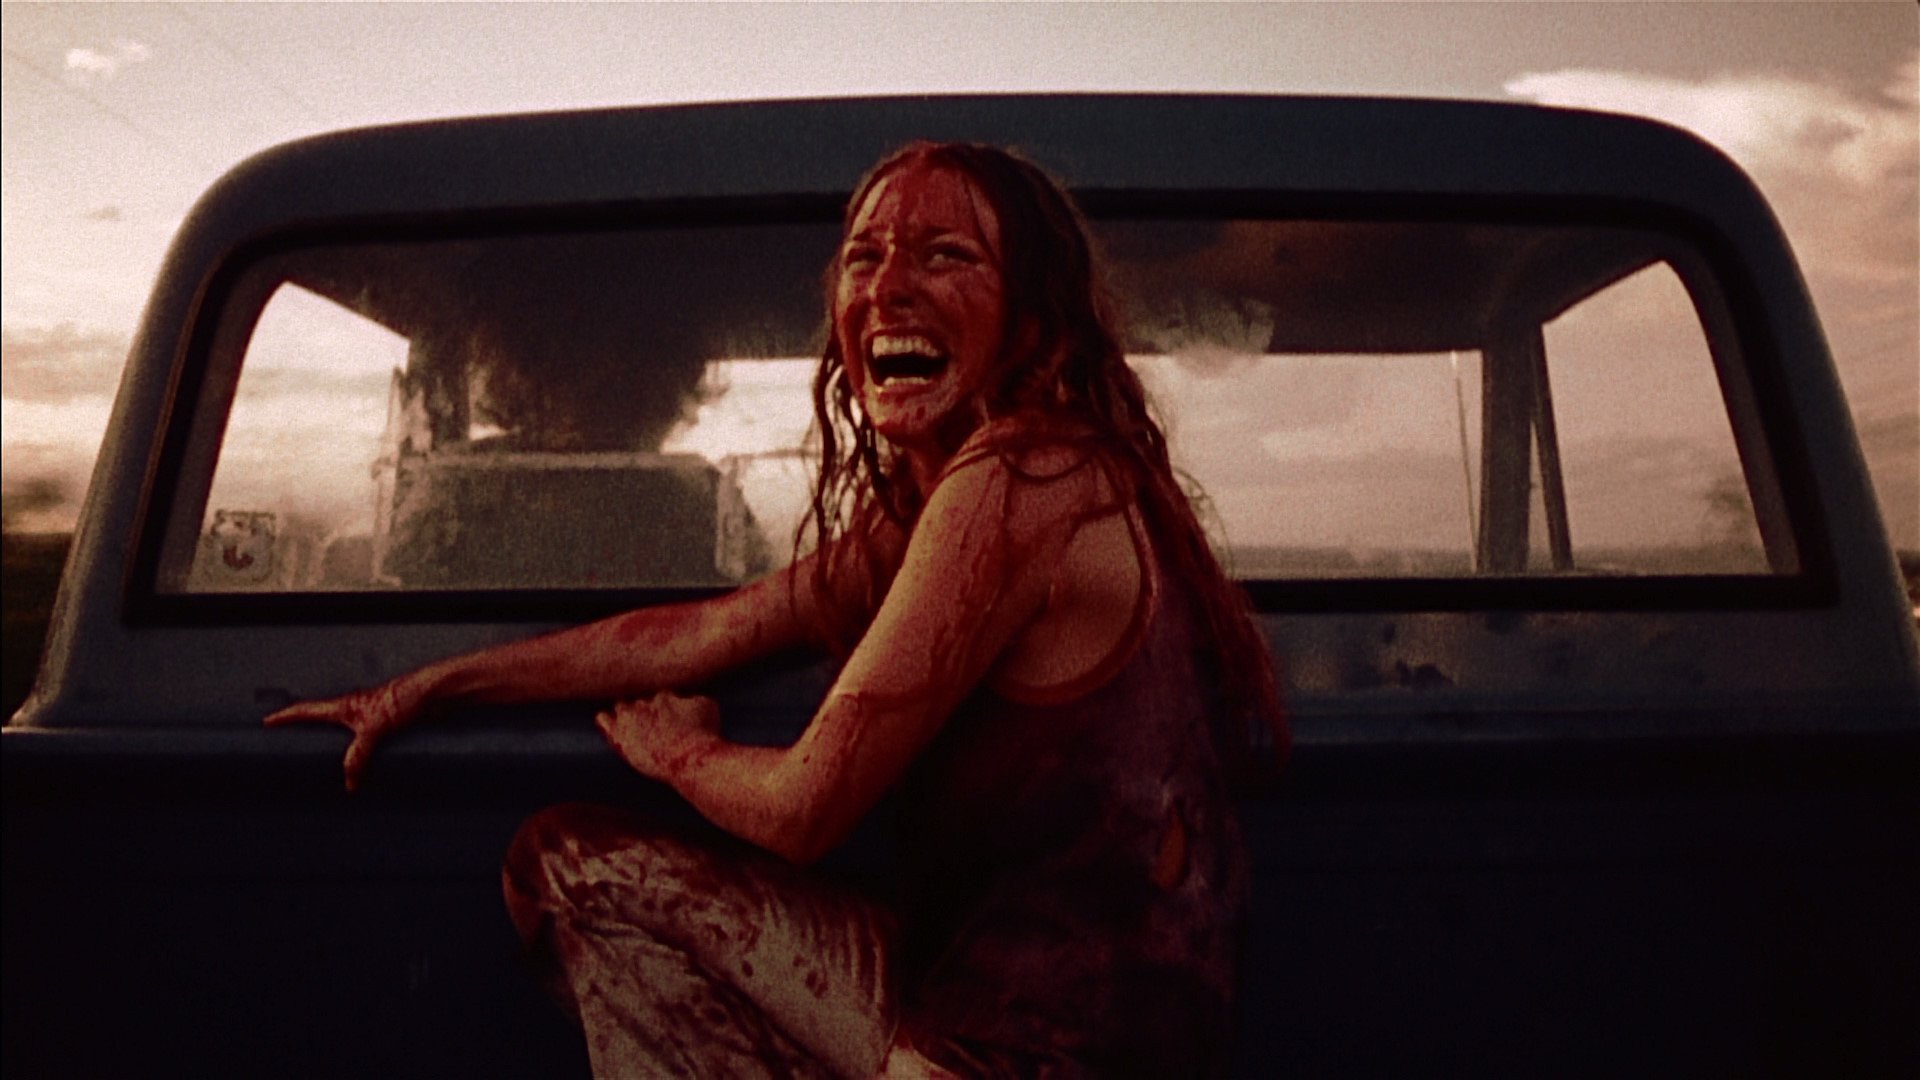 The Texas Chain Saw Massacre  (1974, dir. Tobe Hooper)